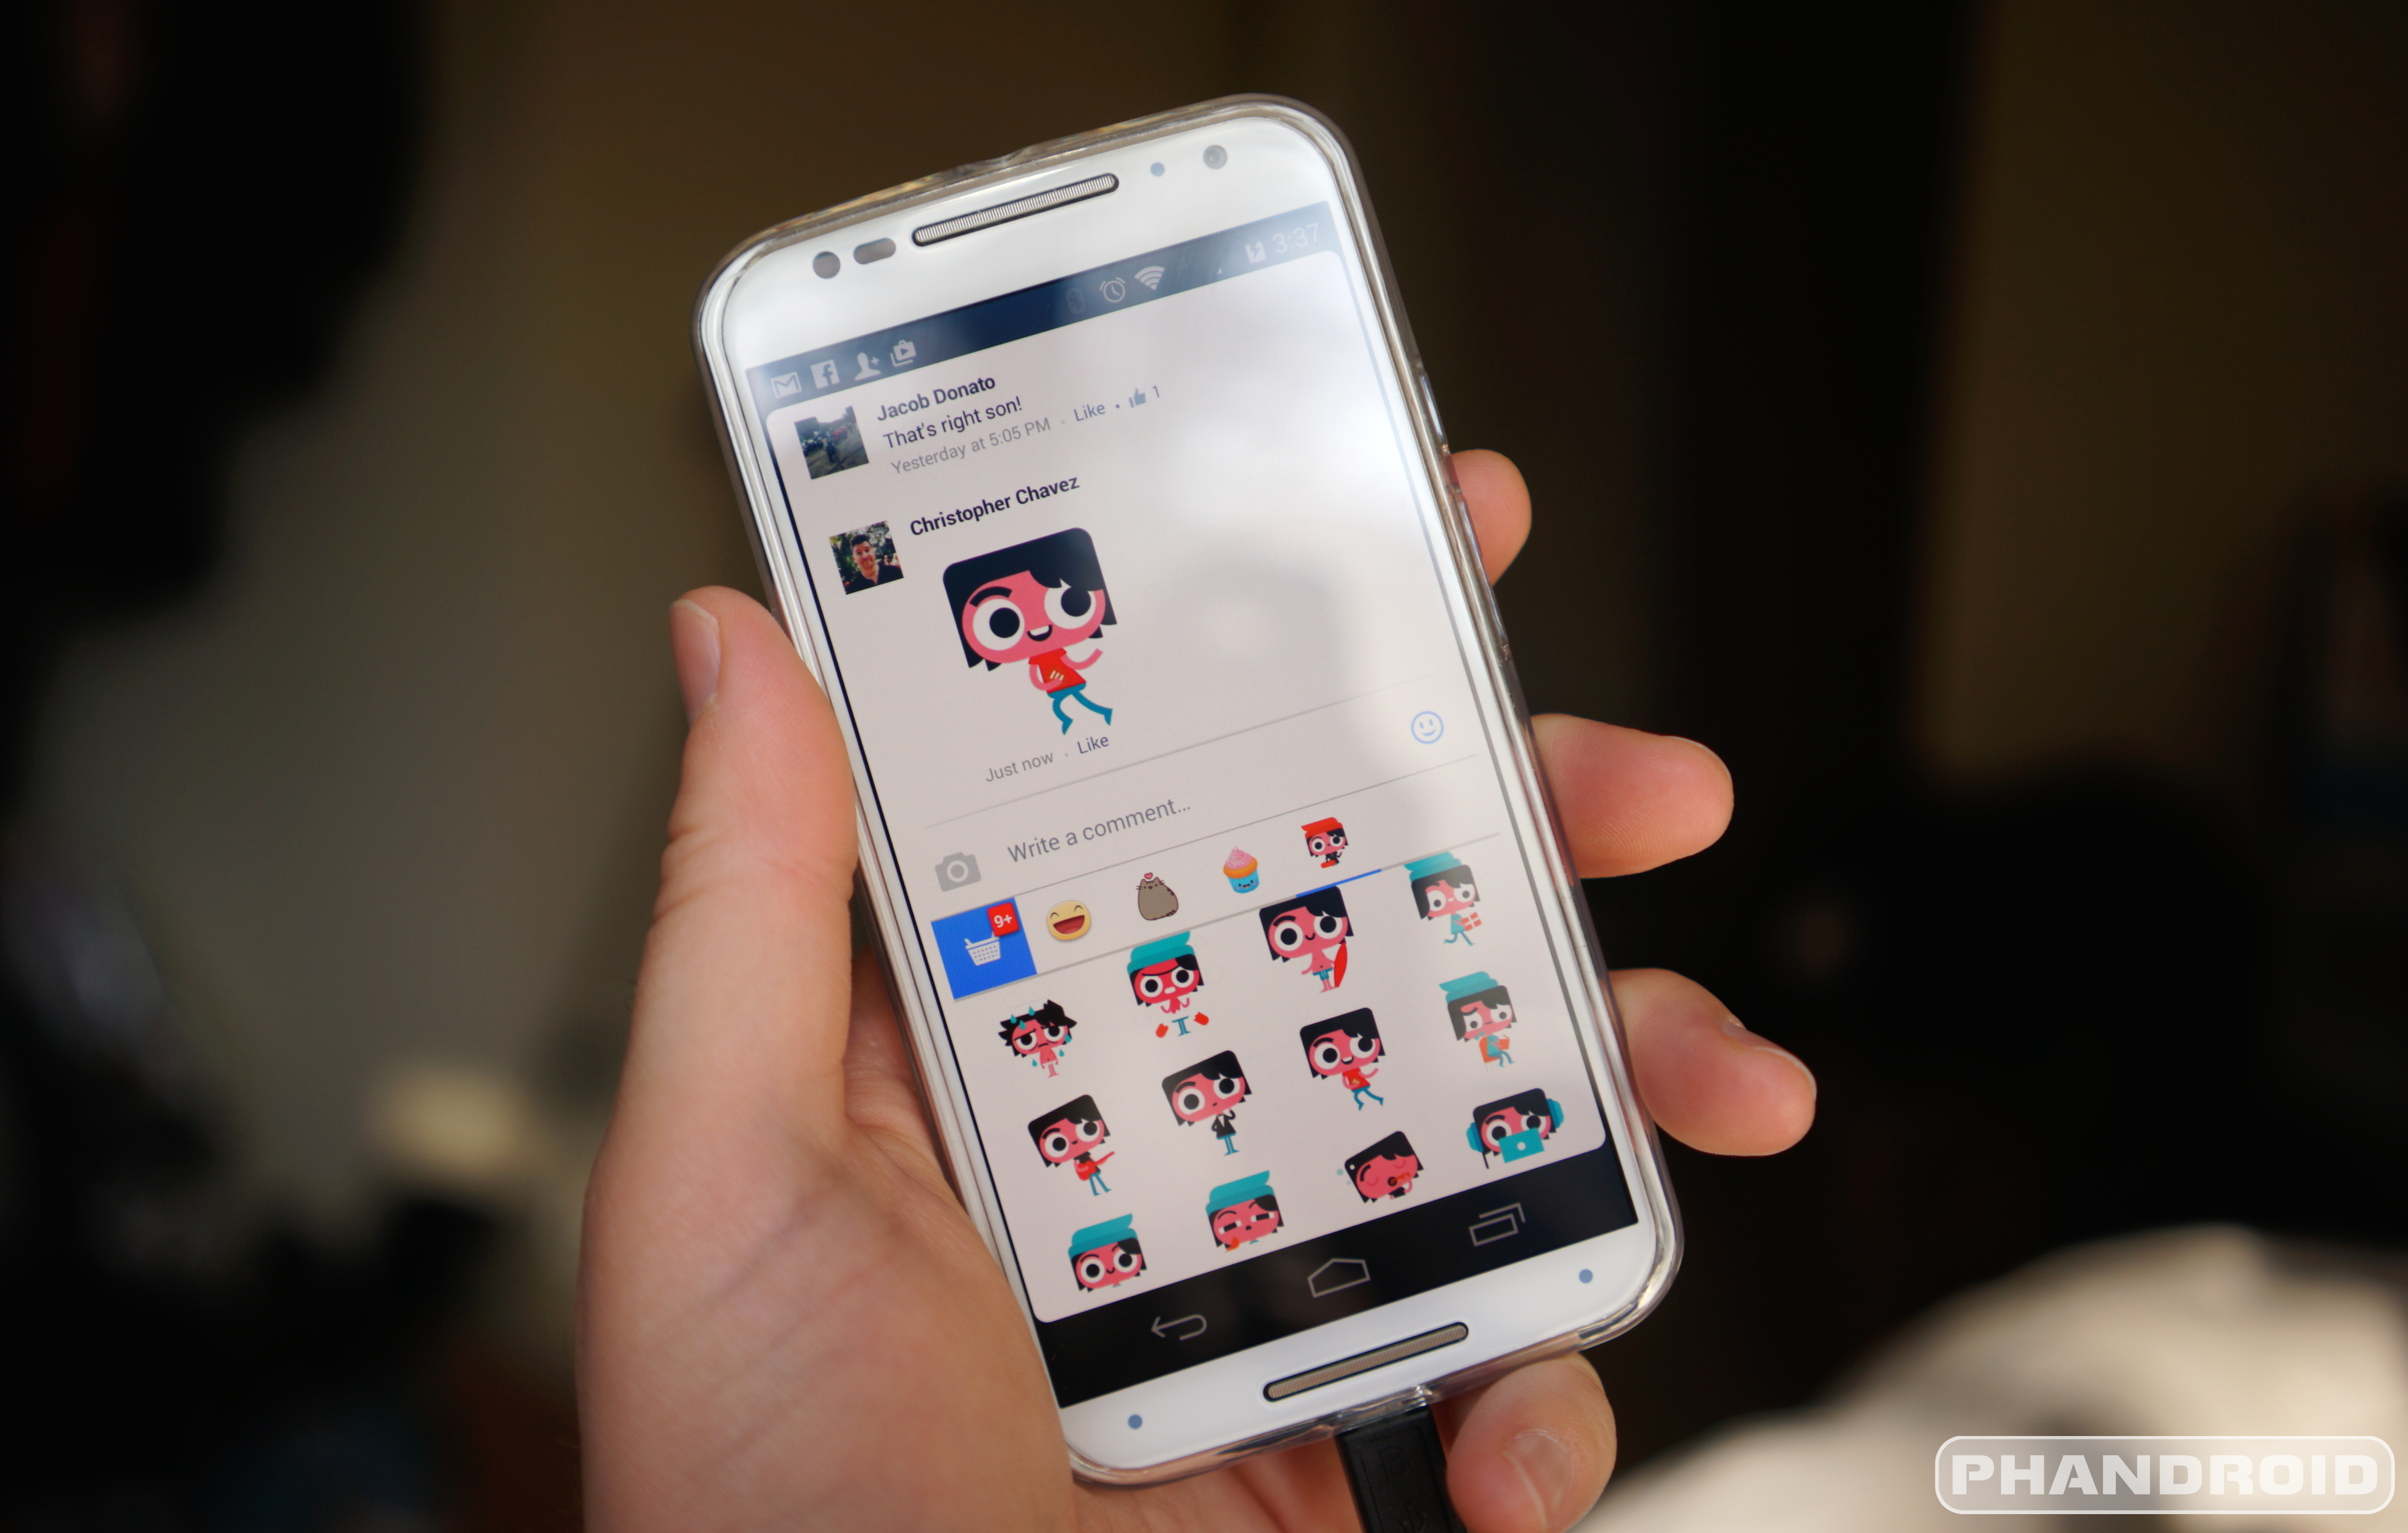 Facebook comments now let you use stickers instead of text